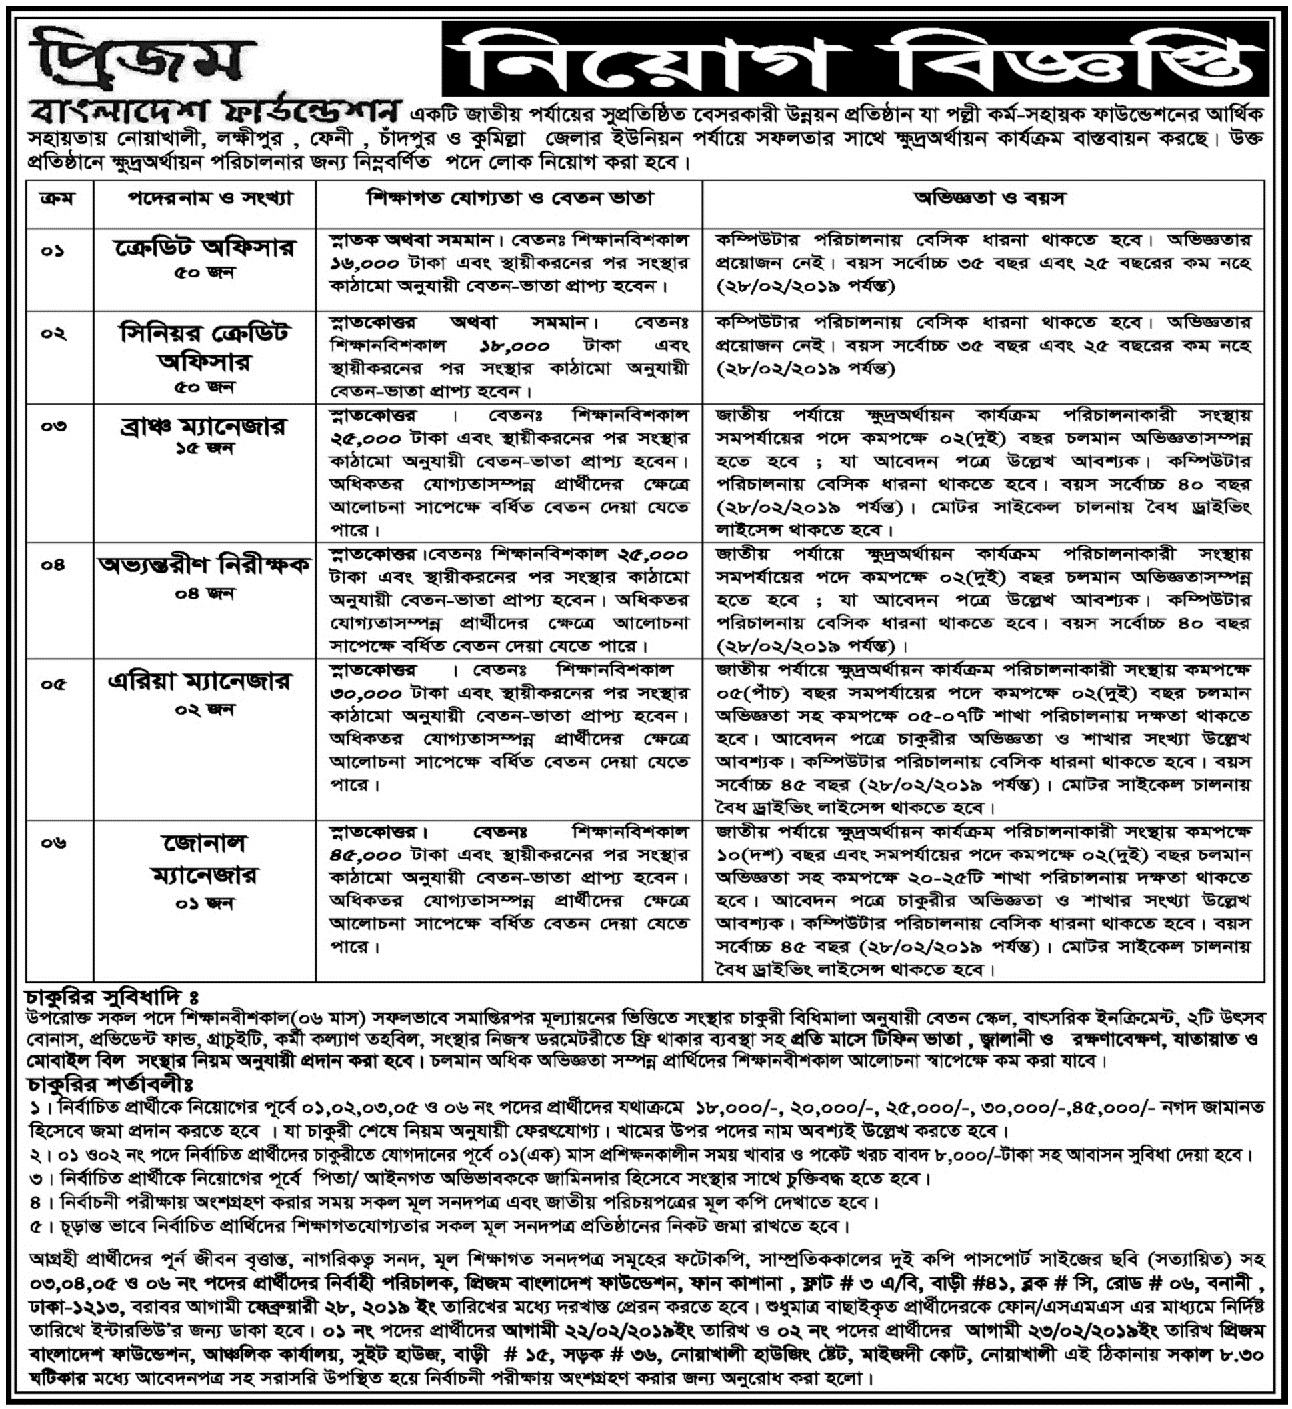 Prism Bangladesh Foundation jobs circular 2019